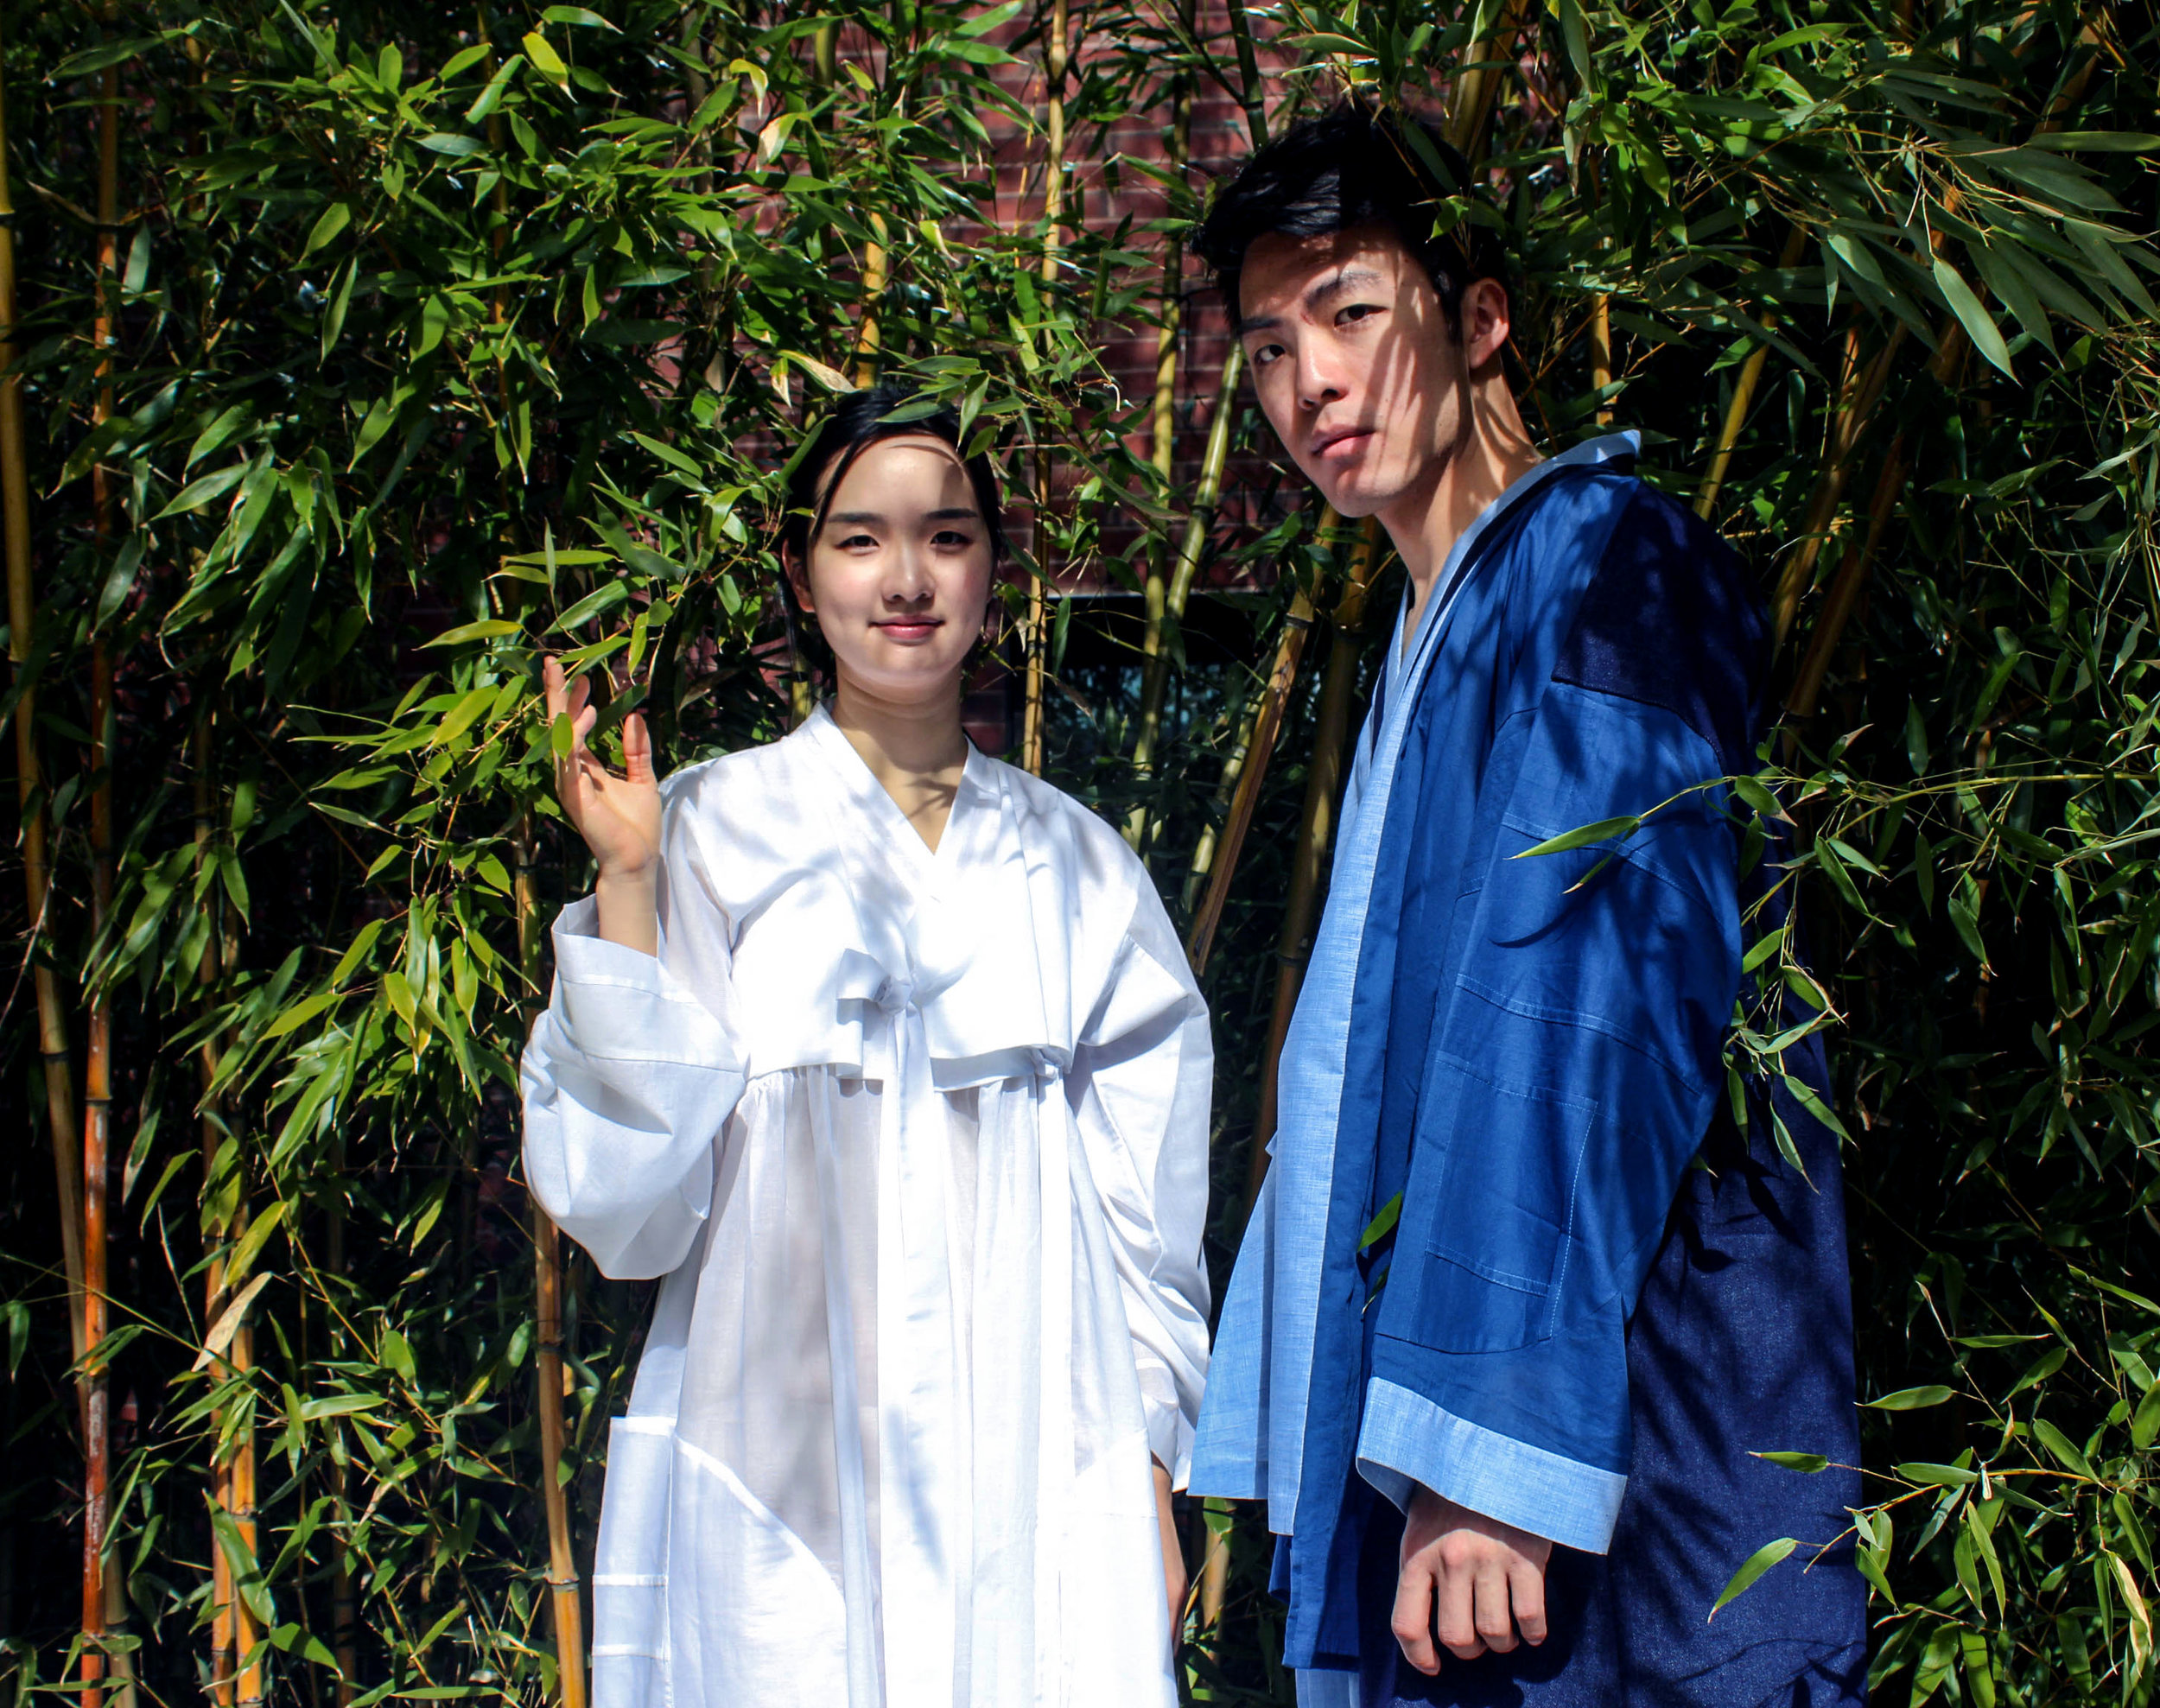 Hanbok - traditional Korean clothing